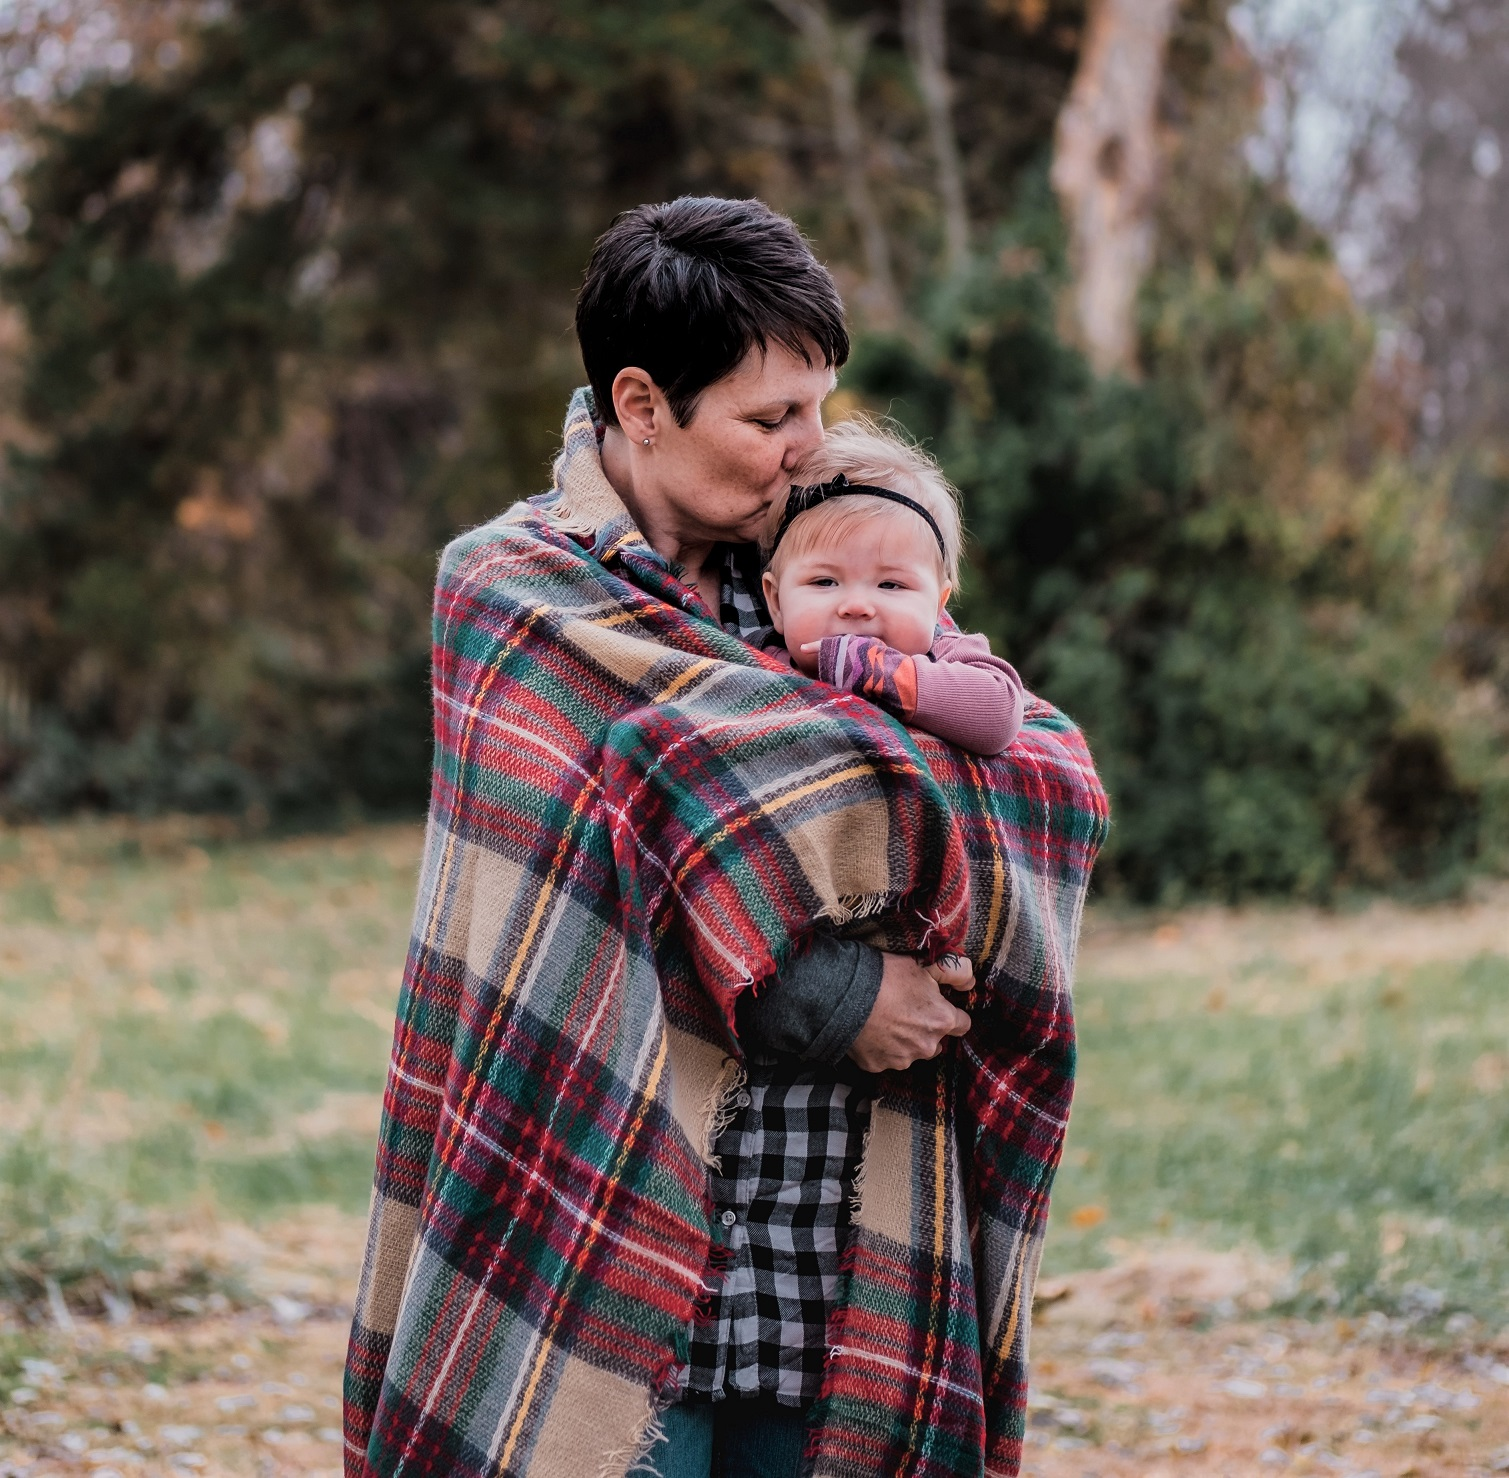 women with a small child in hands - semi-retirement